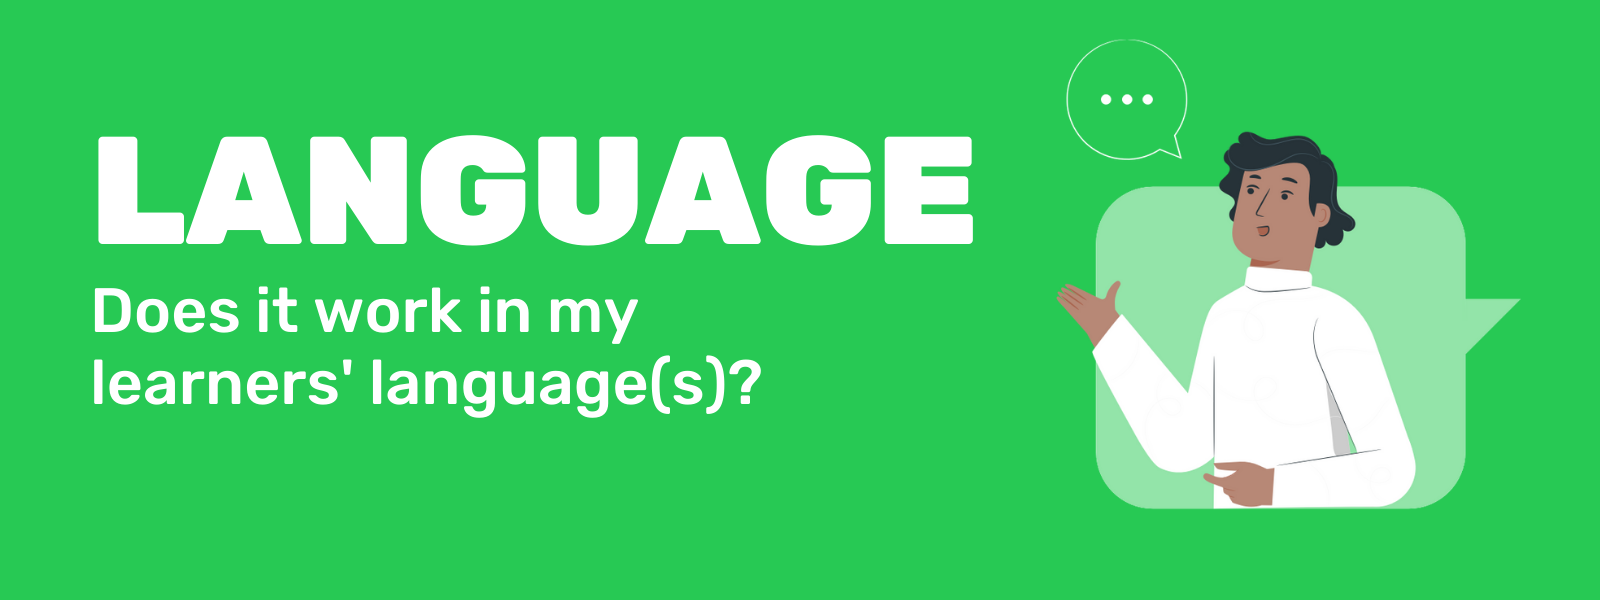 Does it work in my learners' languages?